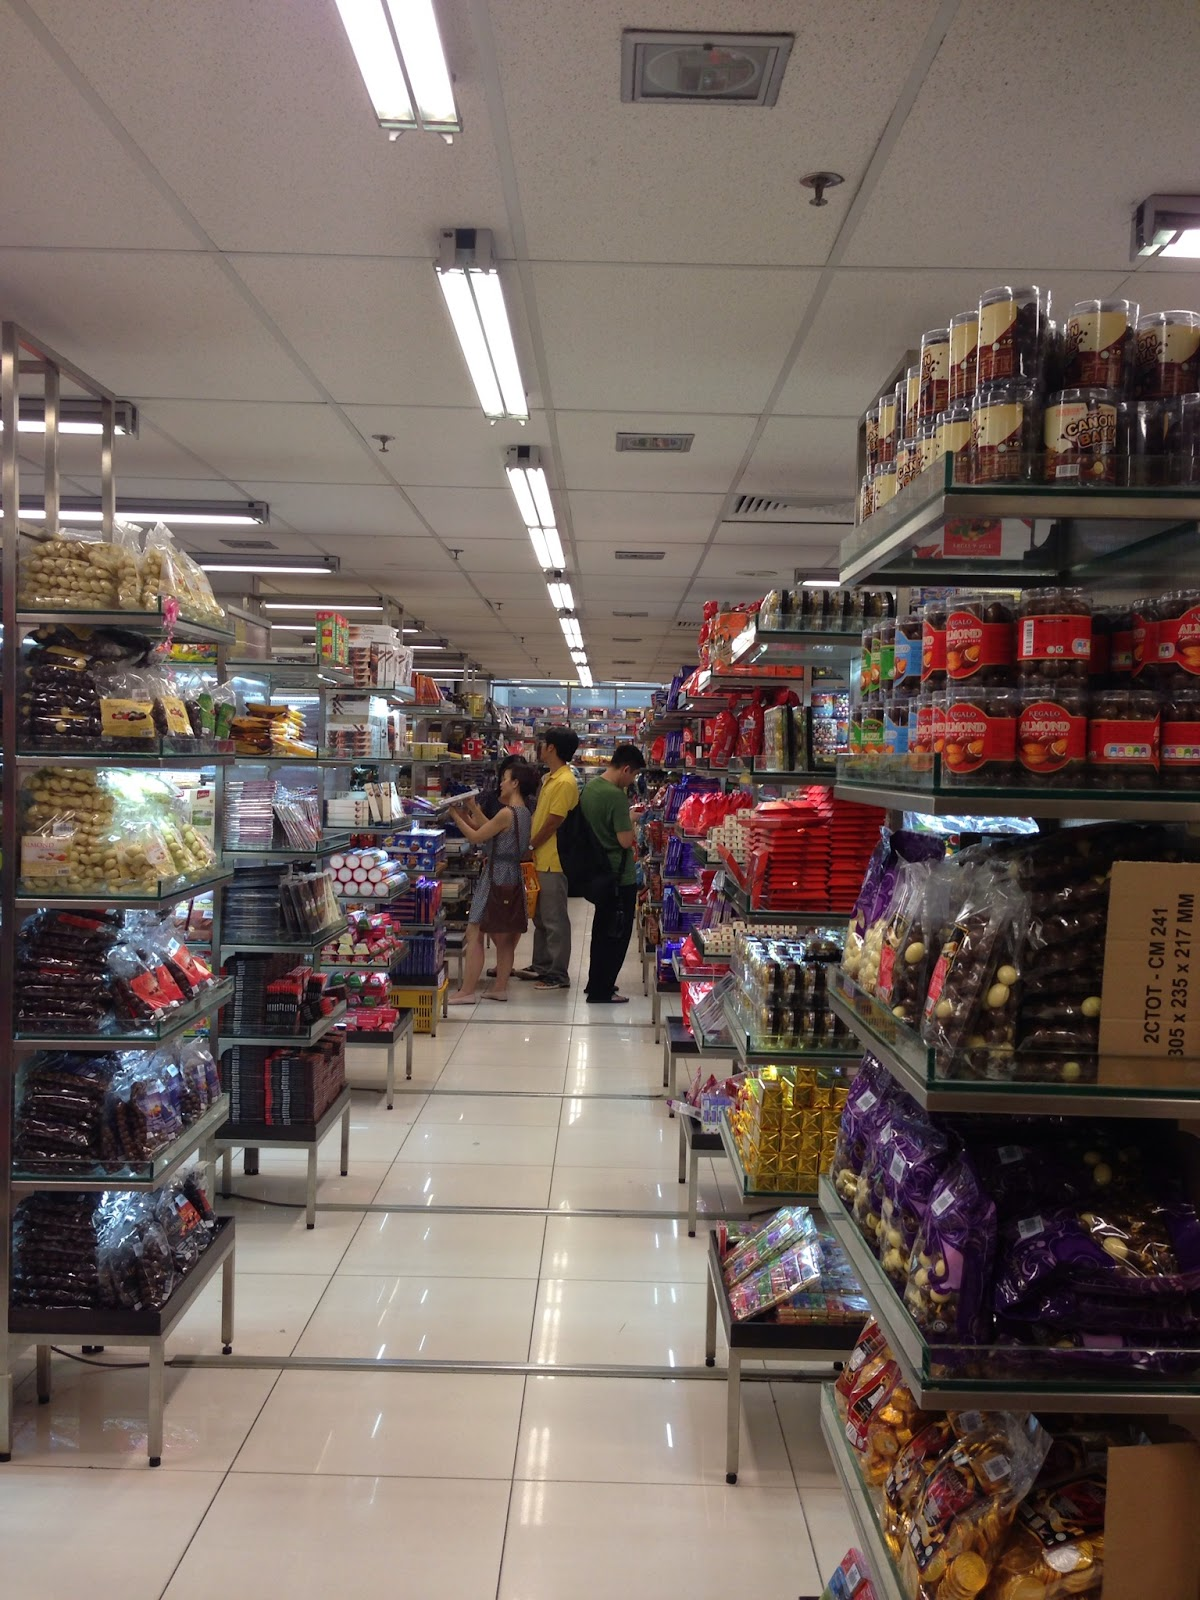 Tams Near Me >> Singapore - Mustafa Centre: aisles and aisles of chocolate